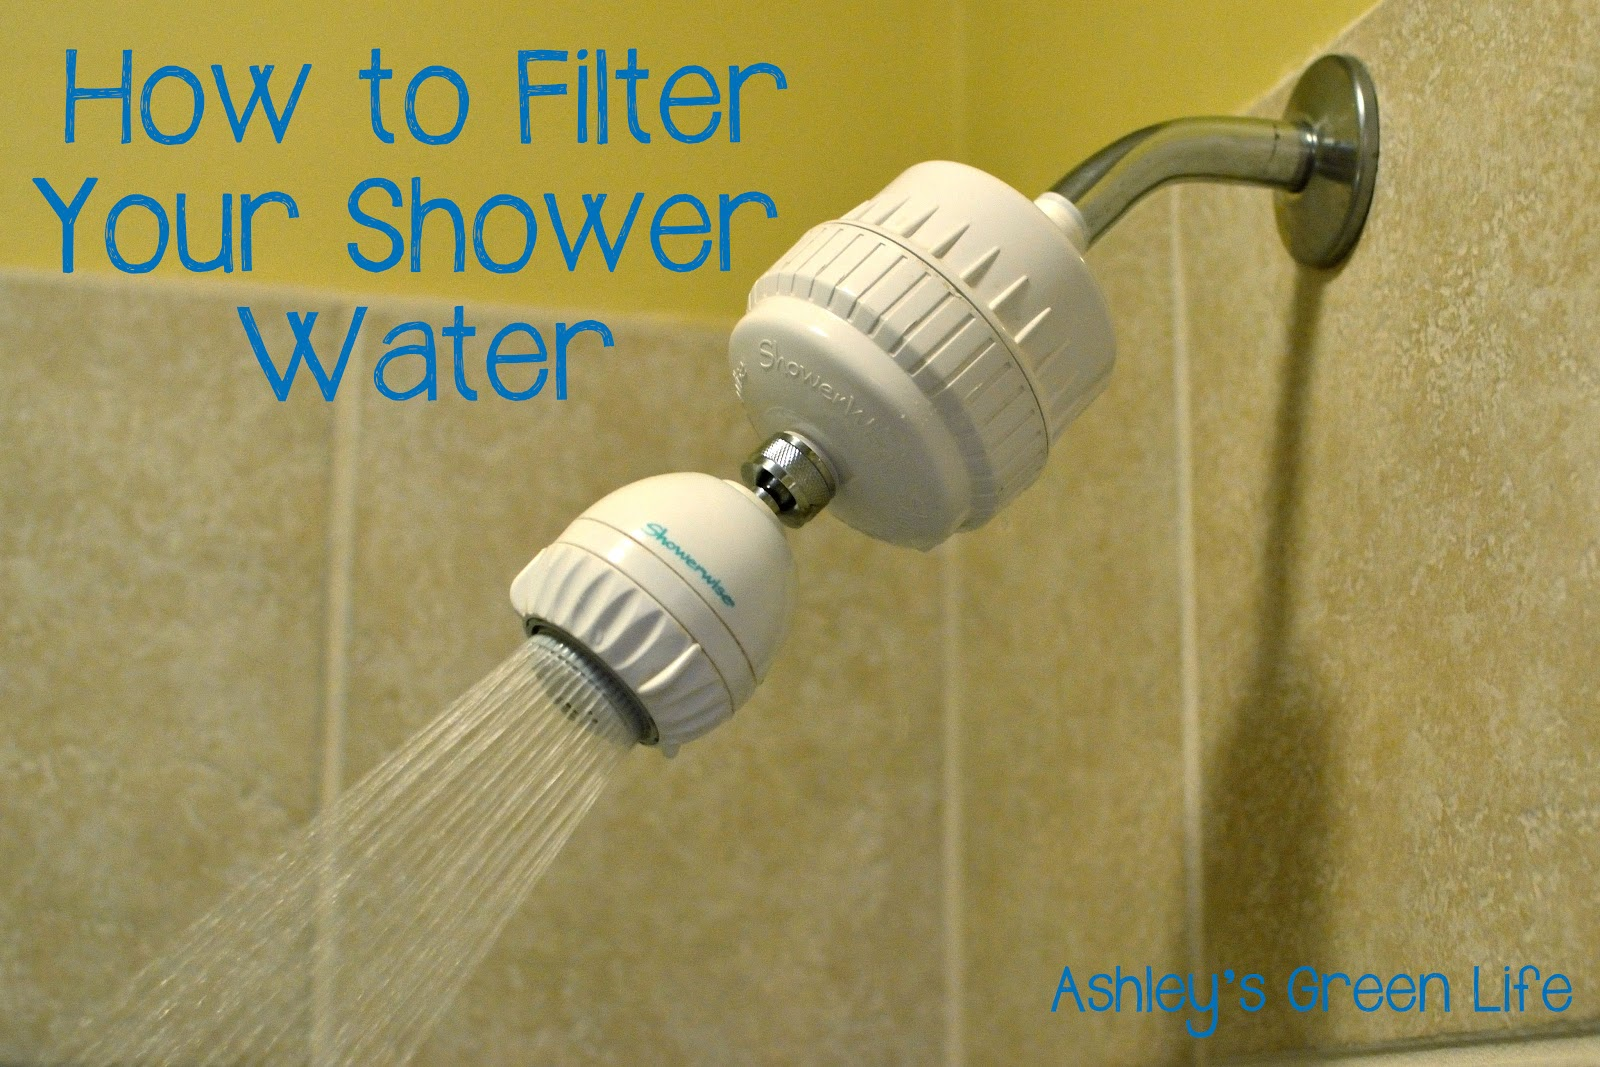 ashley 39 s green life filter your shower water to reduce toxins impr. Black Bedroom Furniture Sets. Home Design Ideas